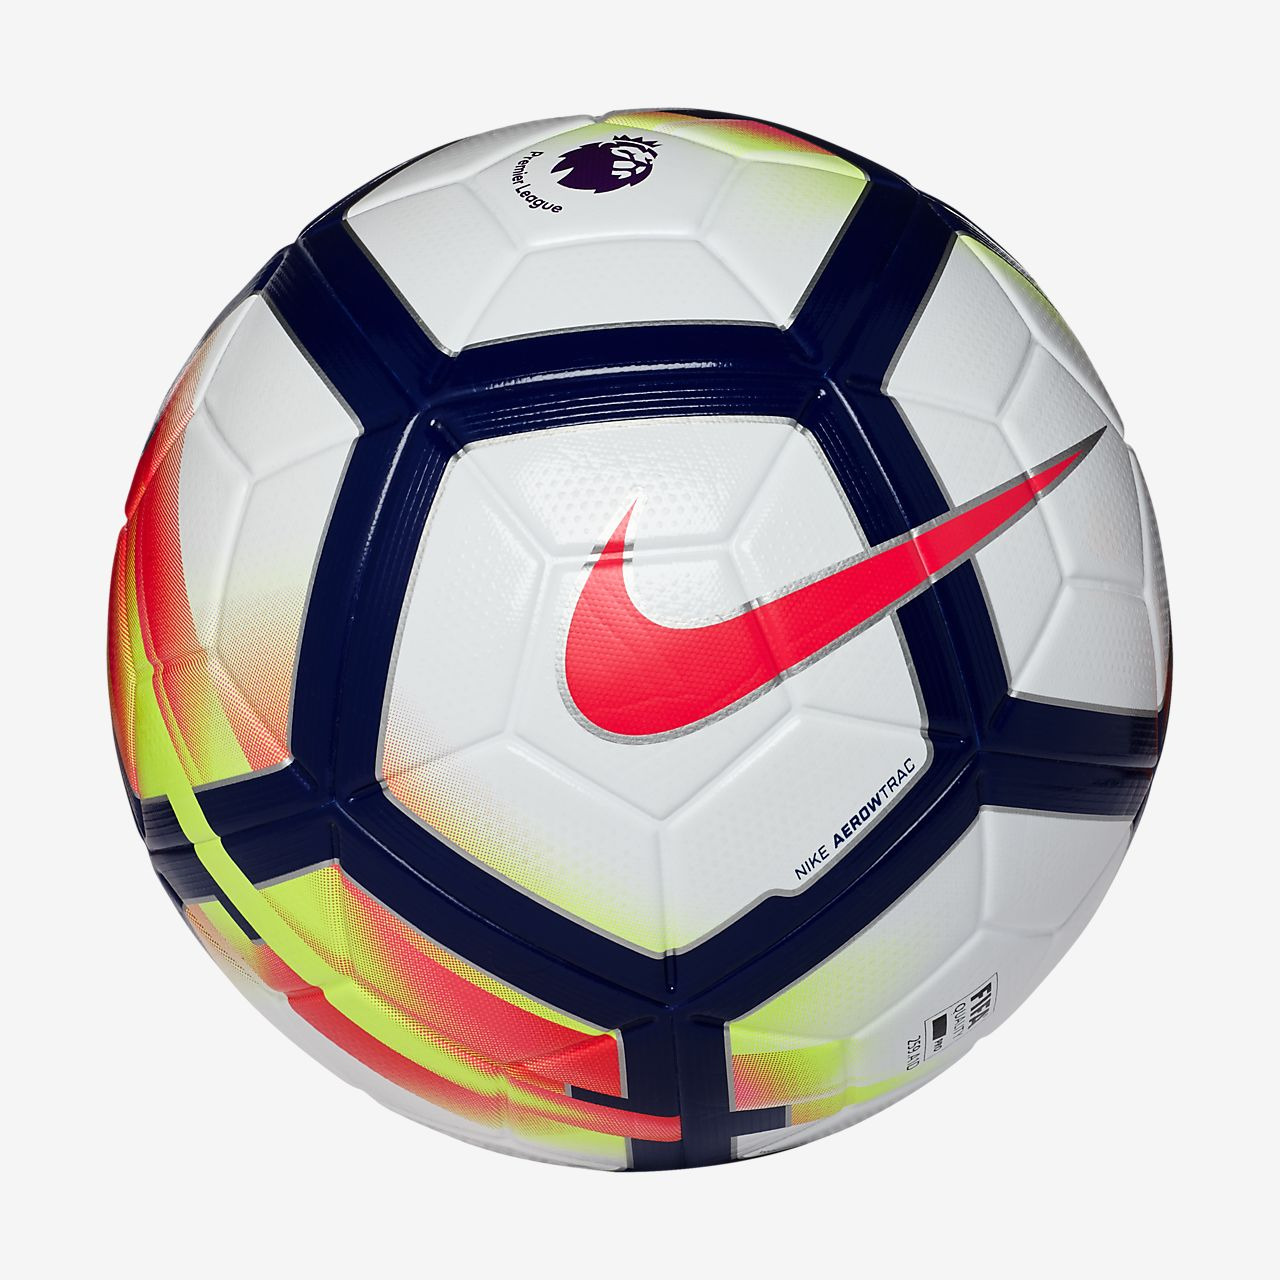 Nike football pictures